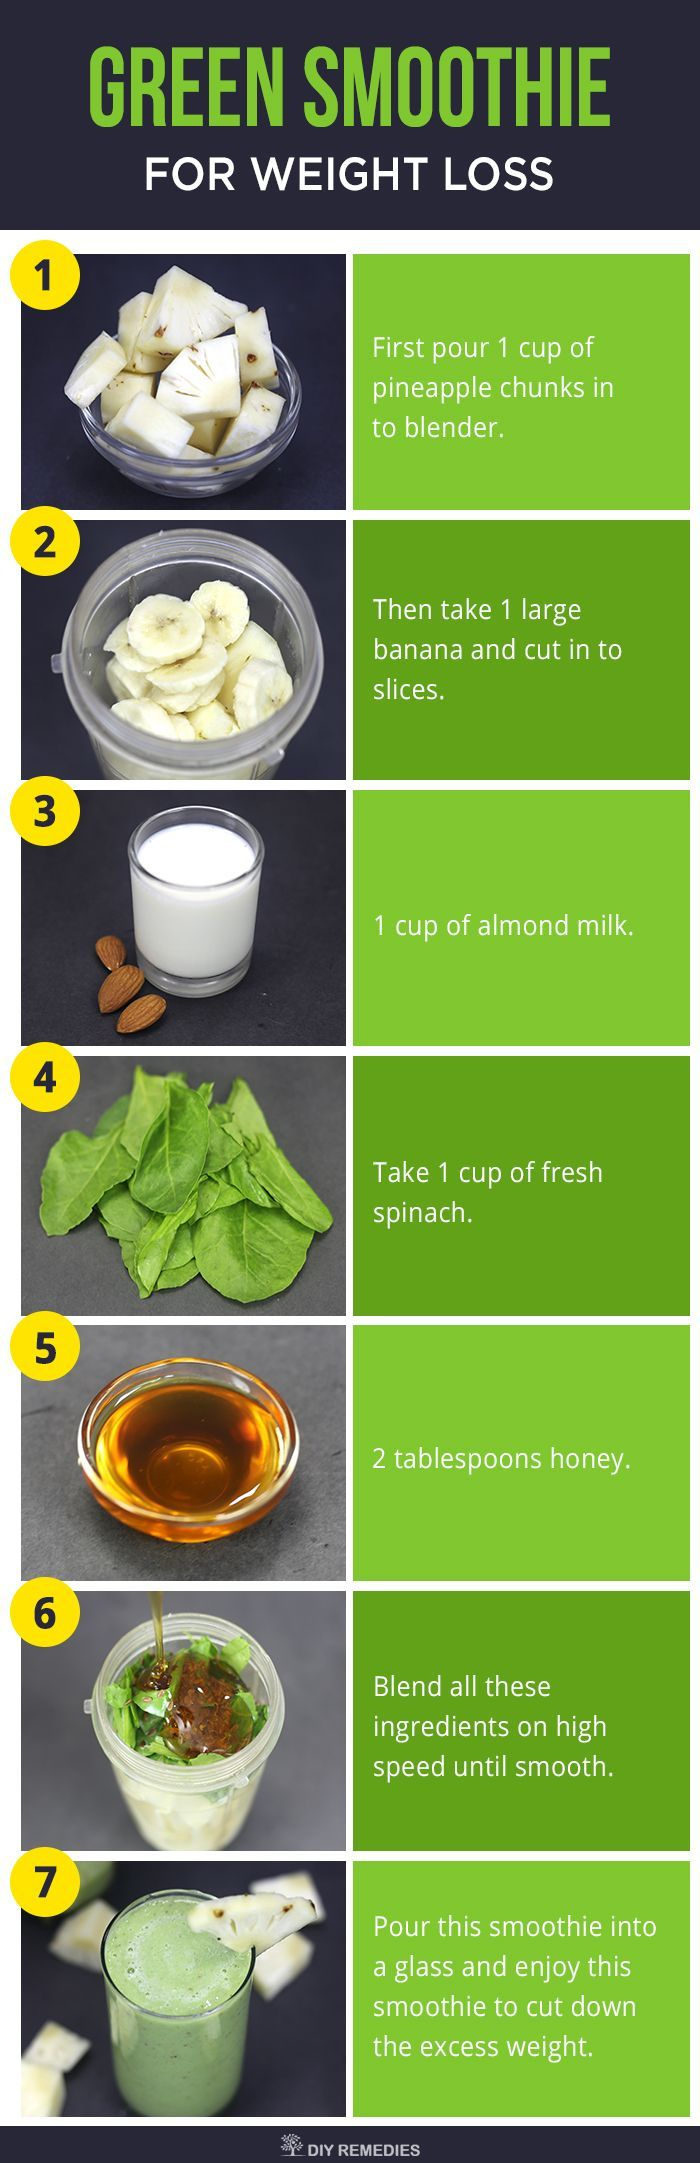 Green Smoothie for Weight Loss Green smoothies are the best detox and weight lo